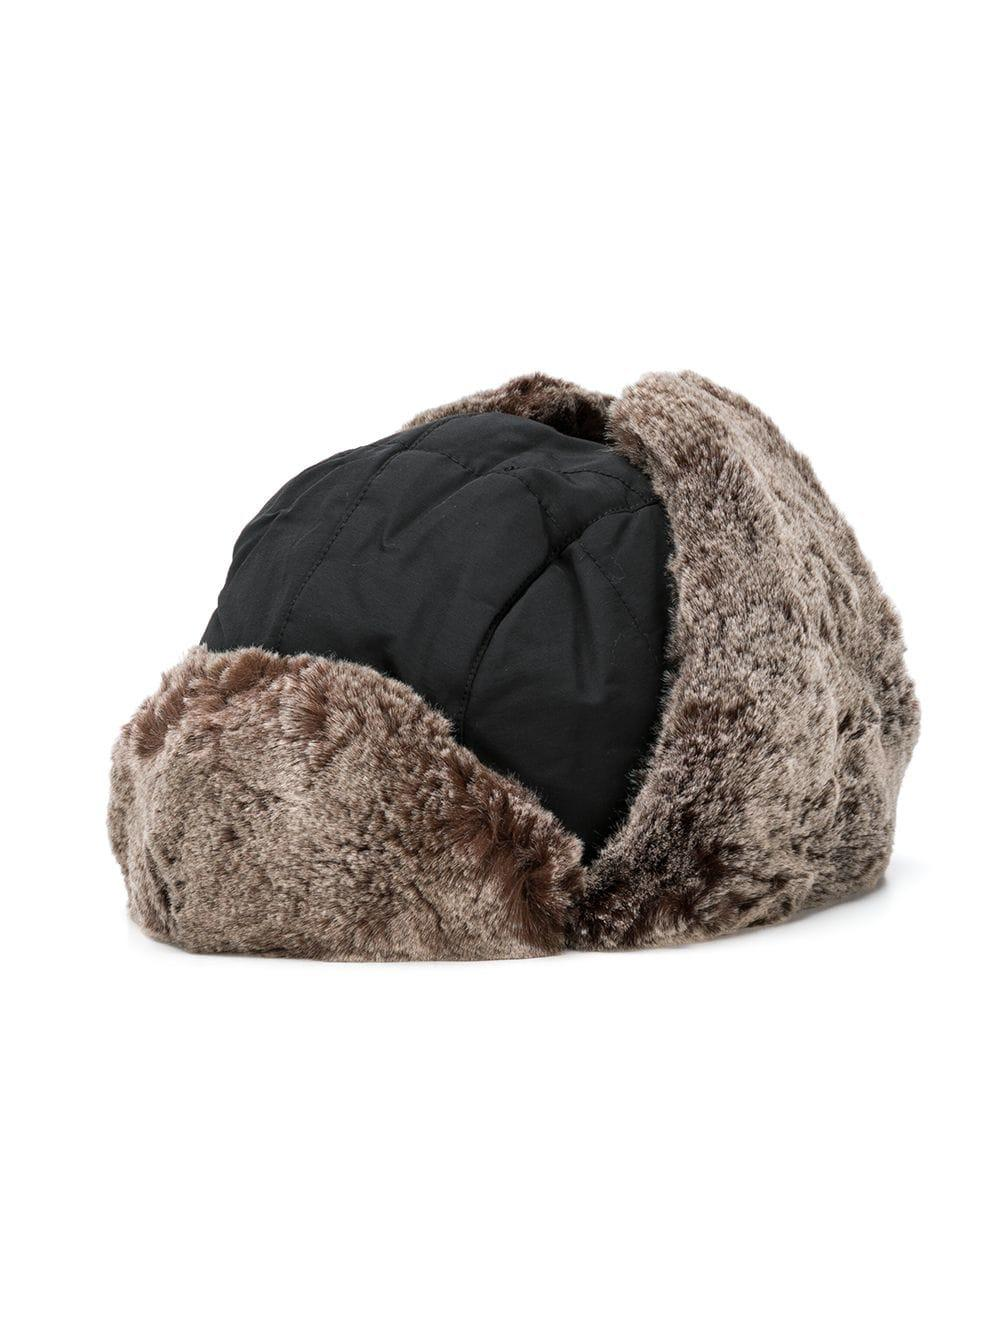 a27eef53 Lyst - Woolrich Faux-fur Contrast Hat in Black for Men - Save 7%